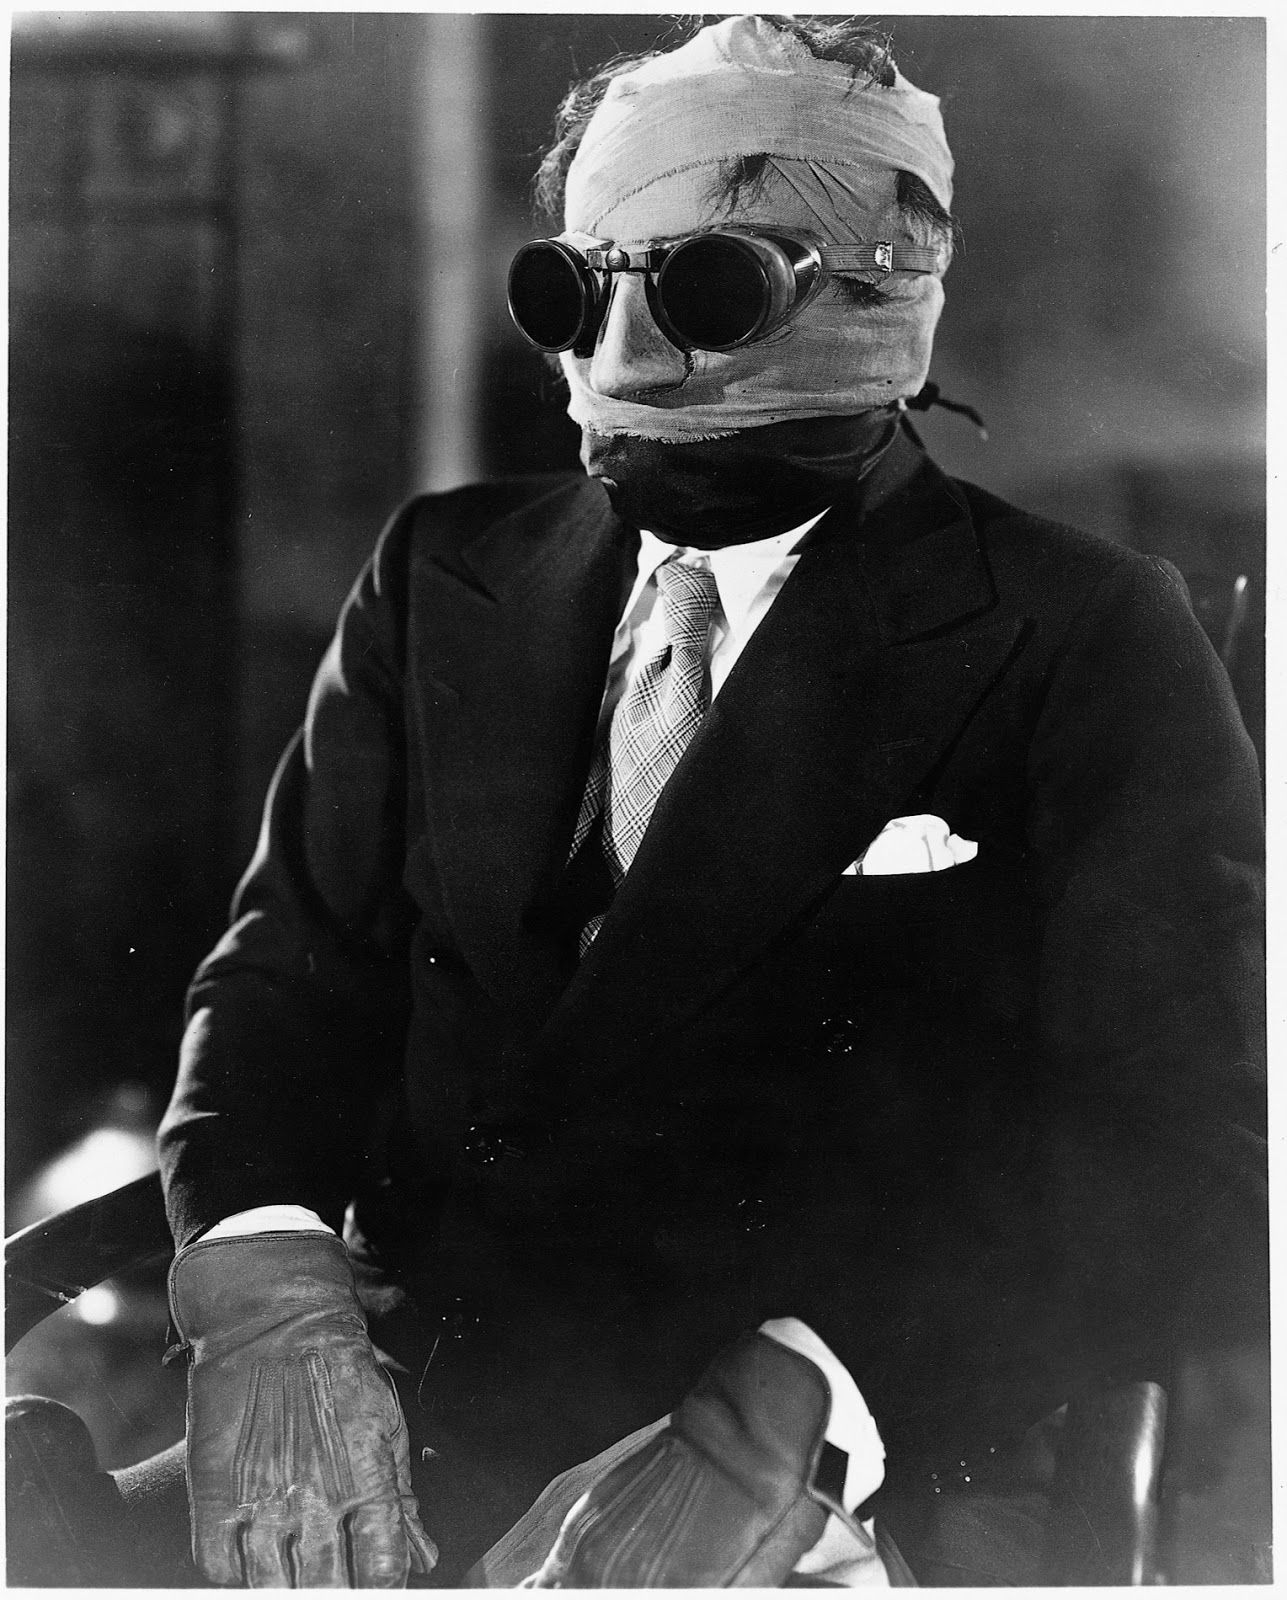 claude rains the invisible man universal directed by claude rains or whoever it is wears goggles here in the invisible man